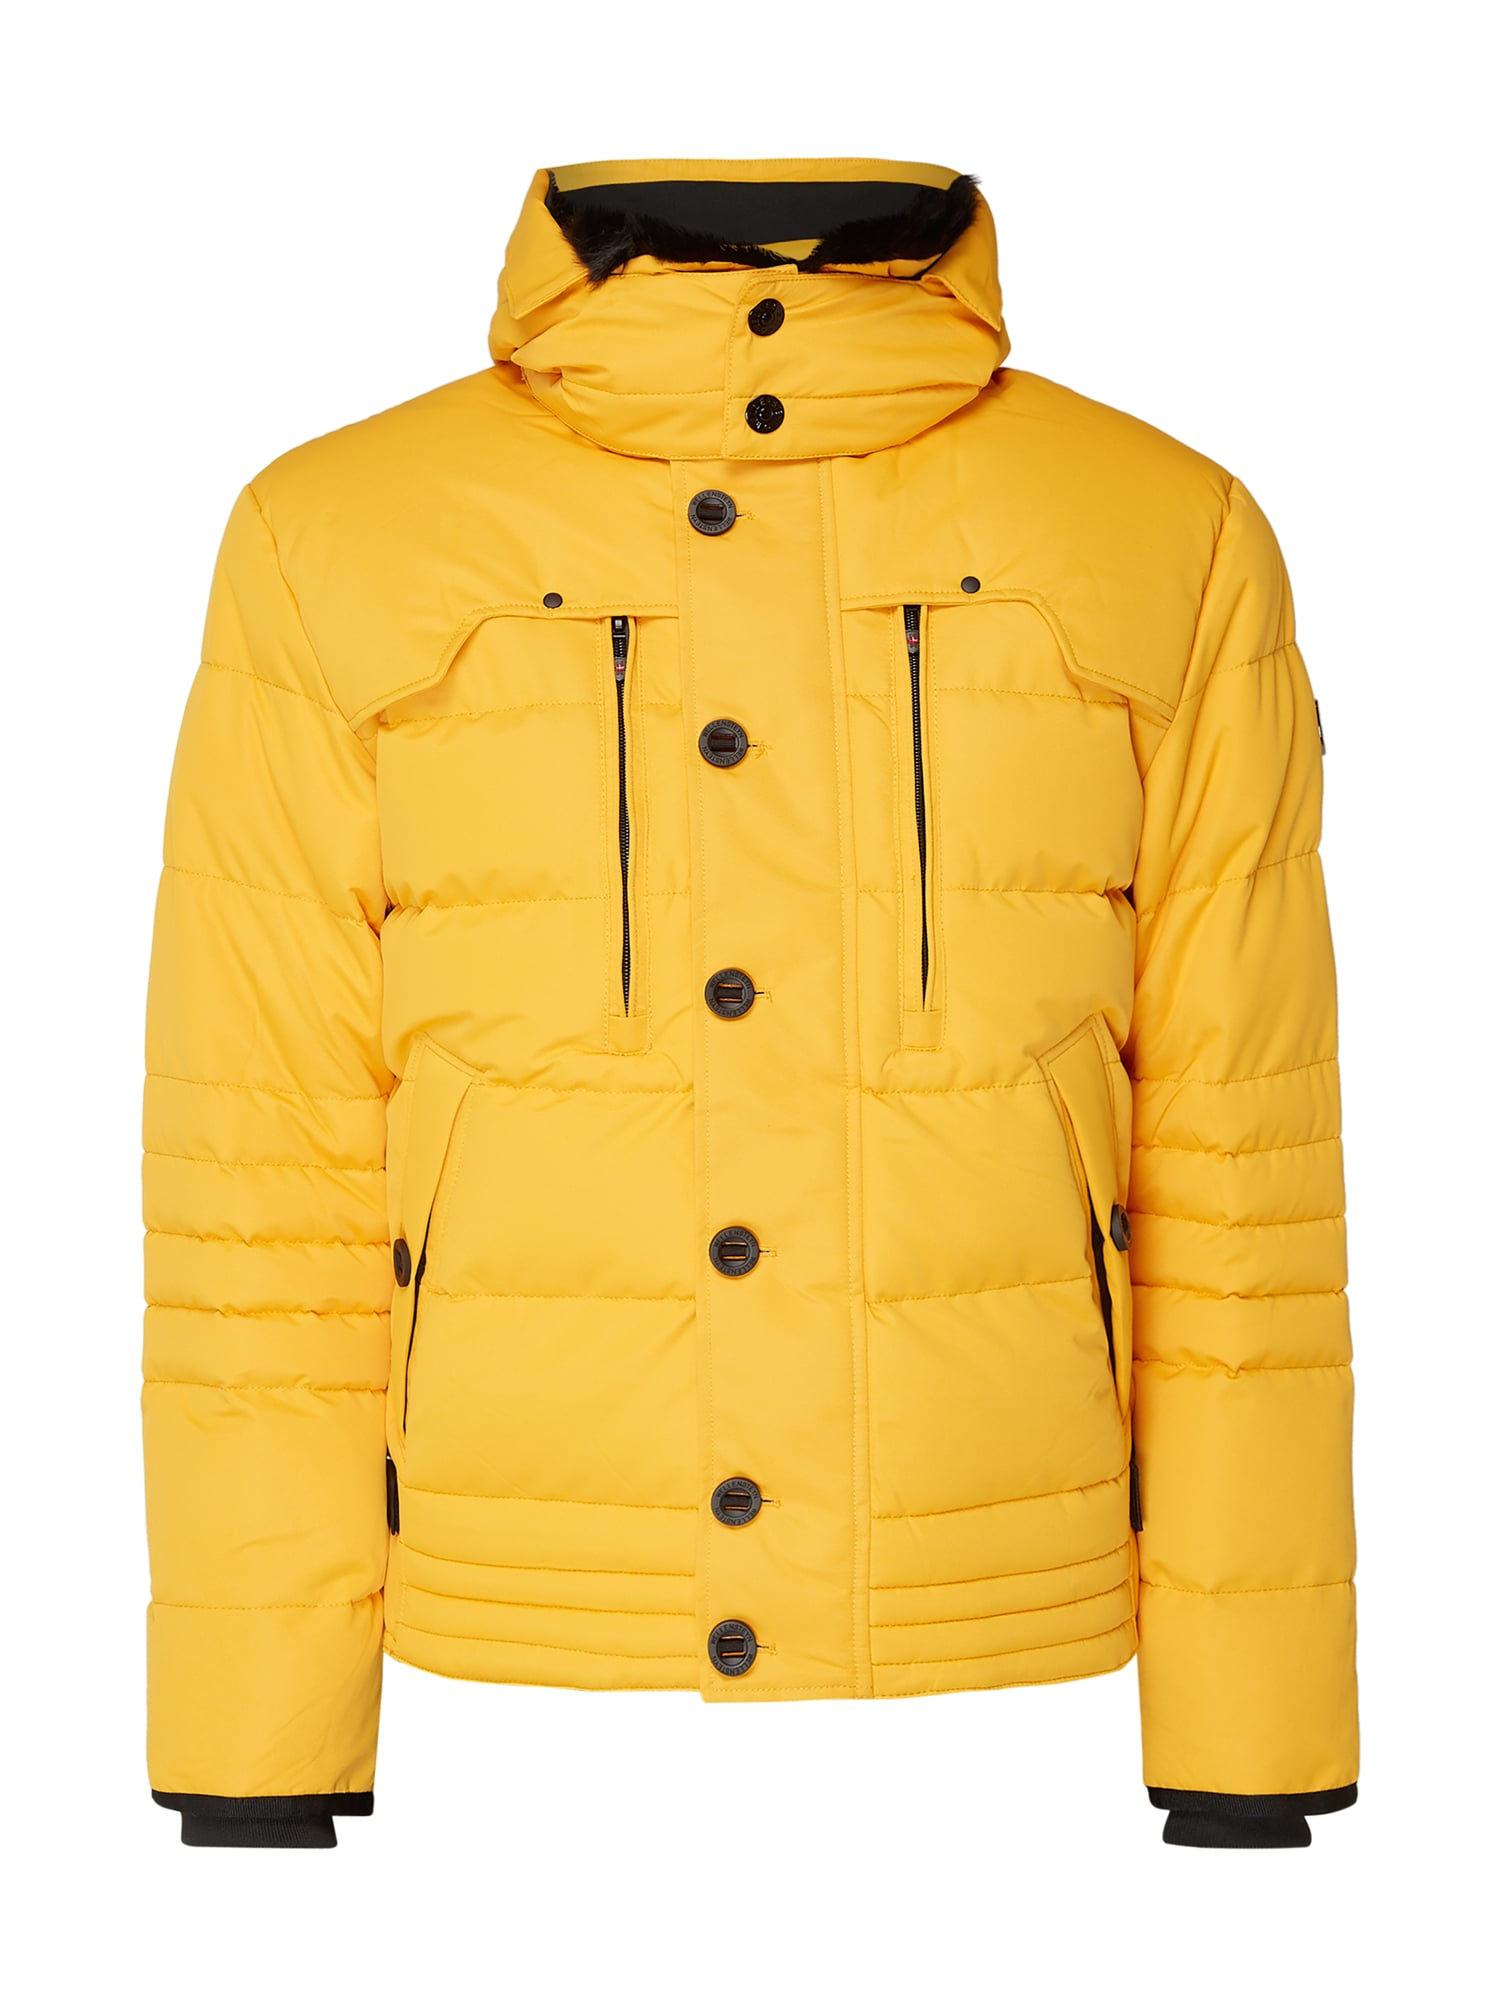 Wellensteyn Parka | Wellensteyn jacke herren, Wellensteyn